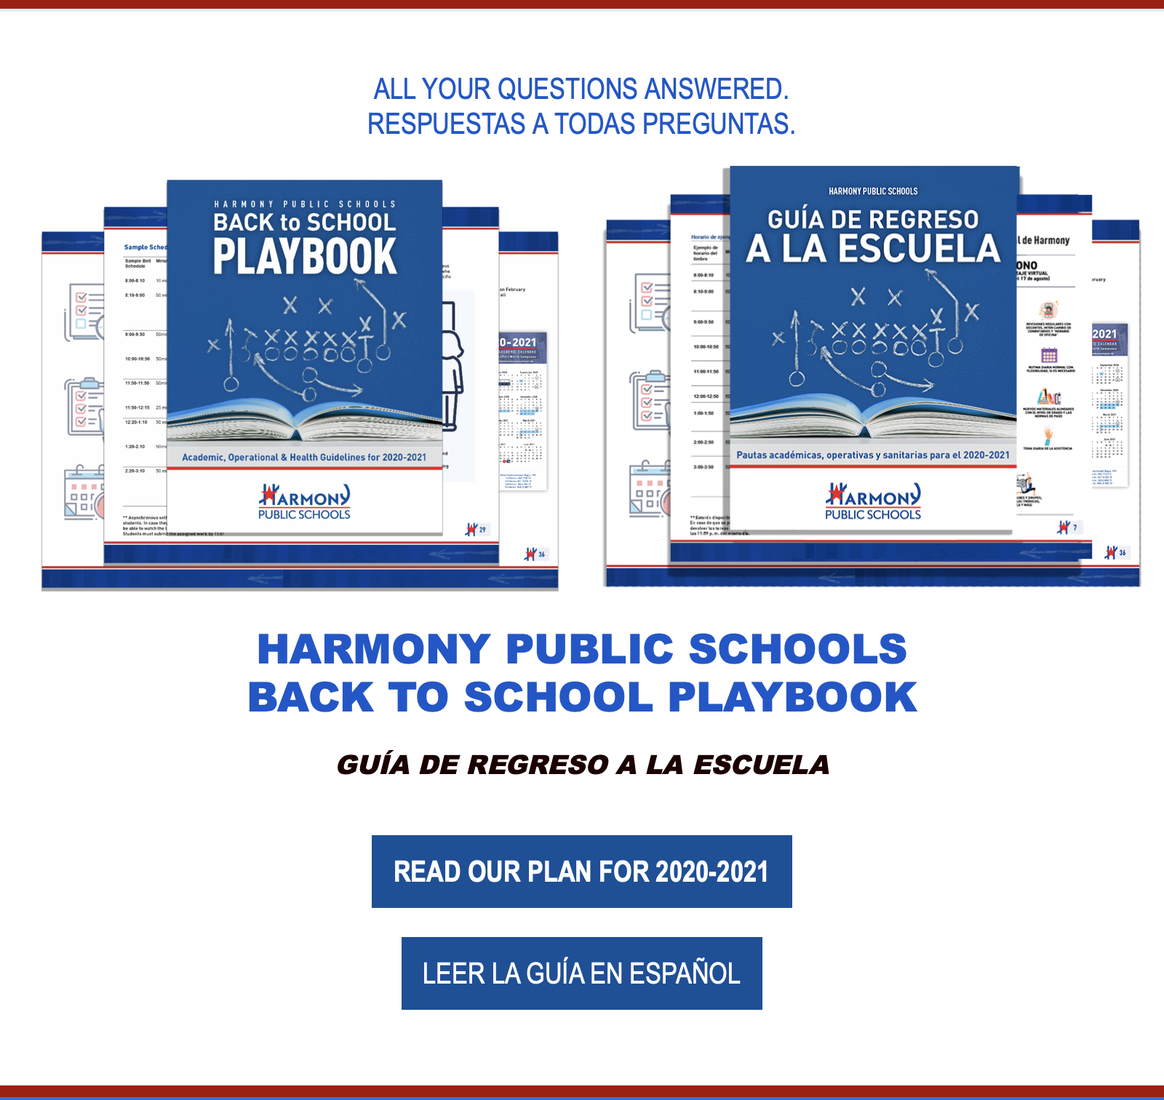 Back to School Playbook